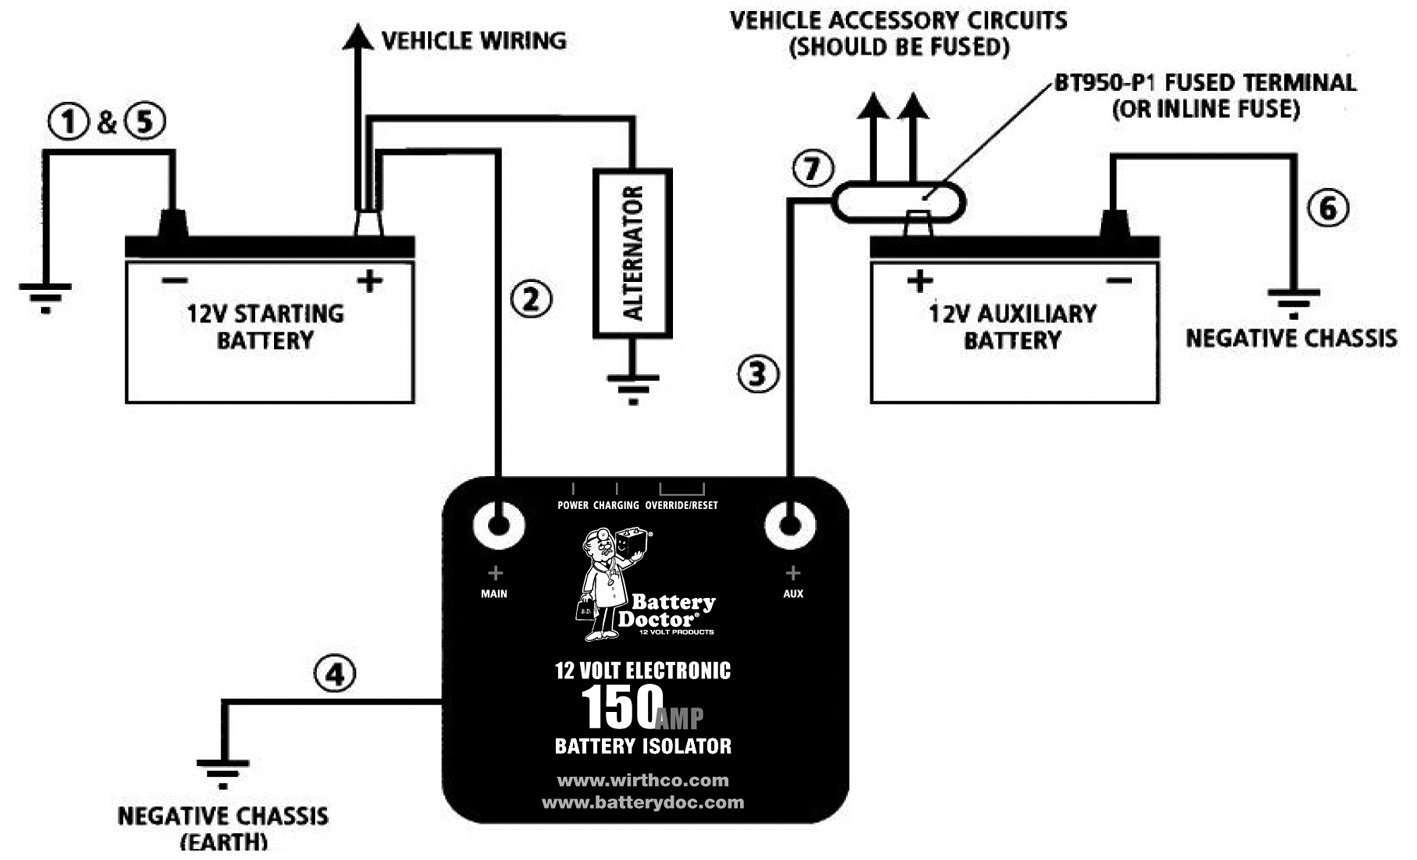 wirthco_schematica installing a battery charged by the alternator in a sprinter auxiliary battery wiring diagram at creativeand.co